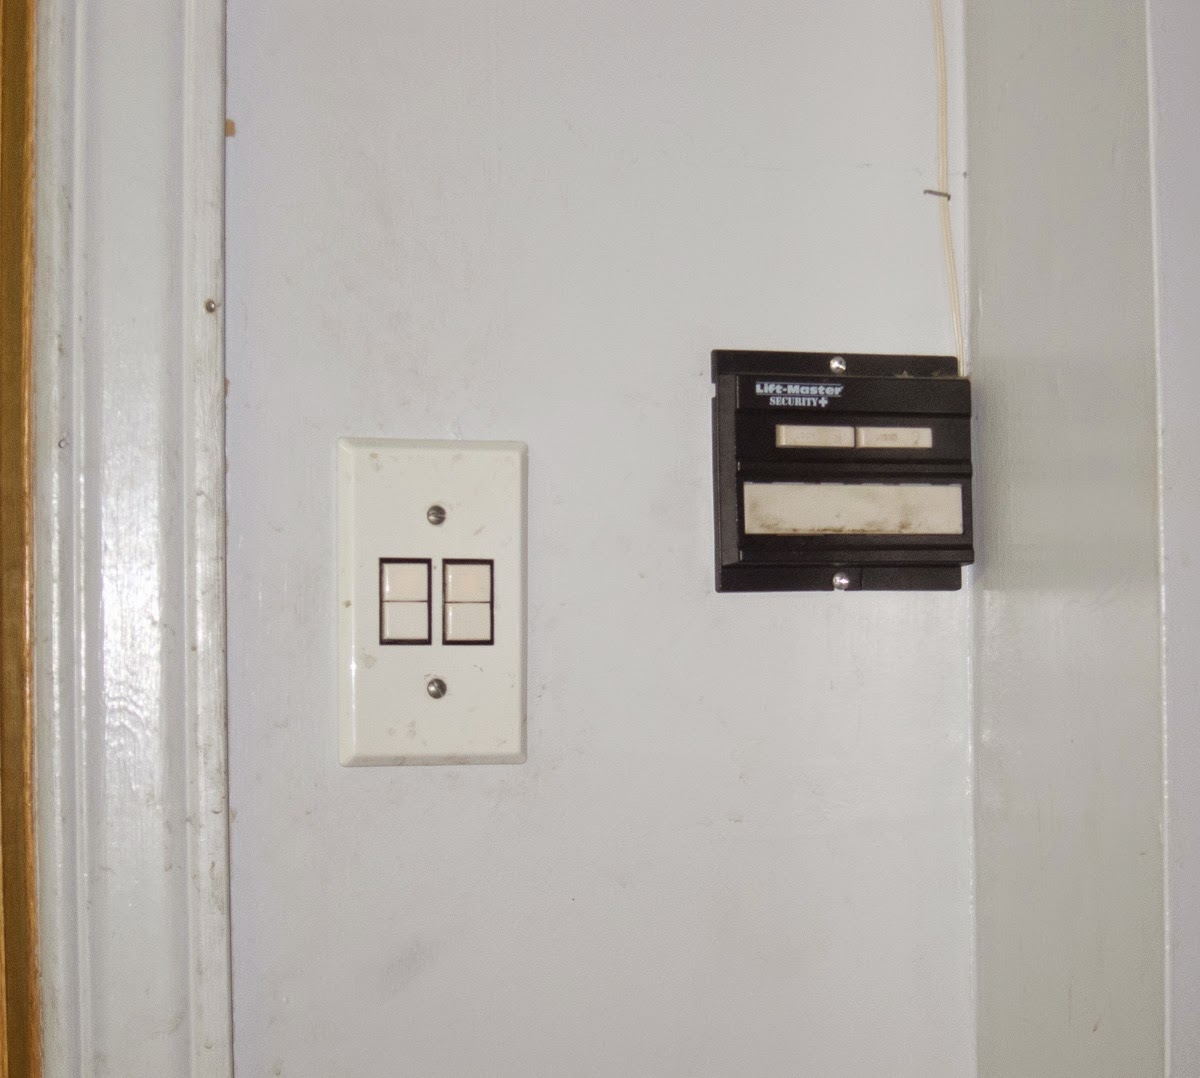 Glen's Home Automation: Dealing With Wall Acne